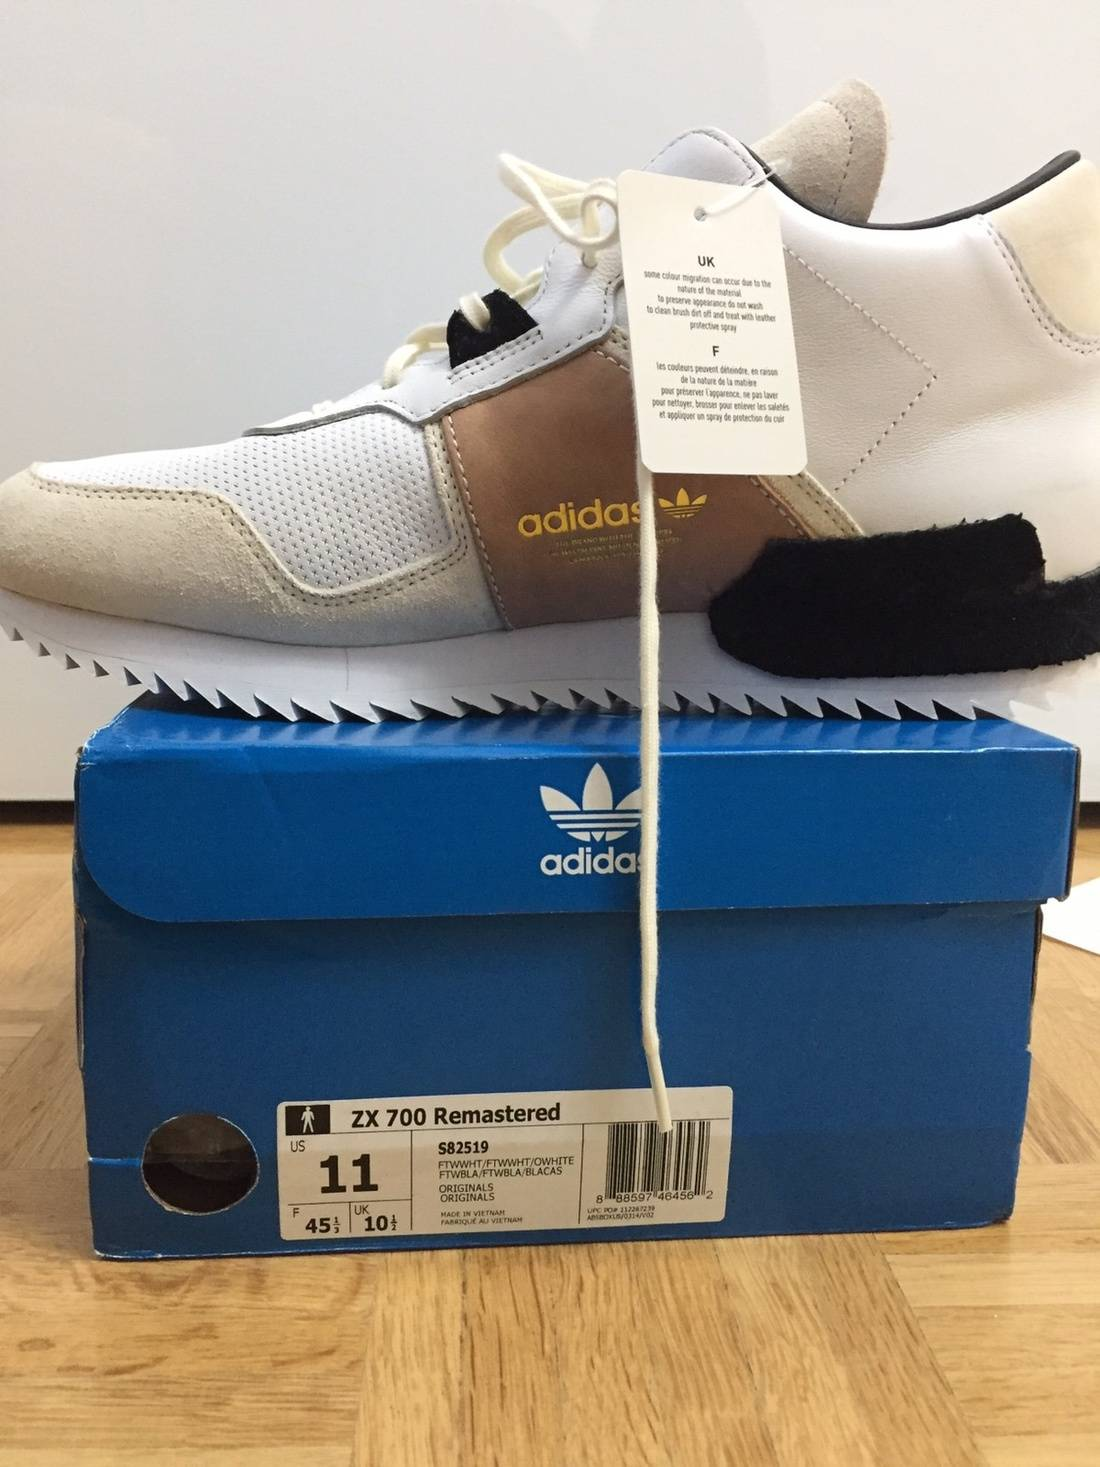 9c061c196c926 ... amazon adidas zx 700 remastered rick owens y3 inspired size us 11 eu  254ec 7bf40